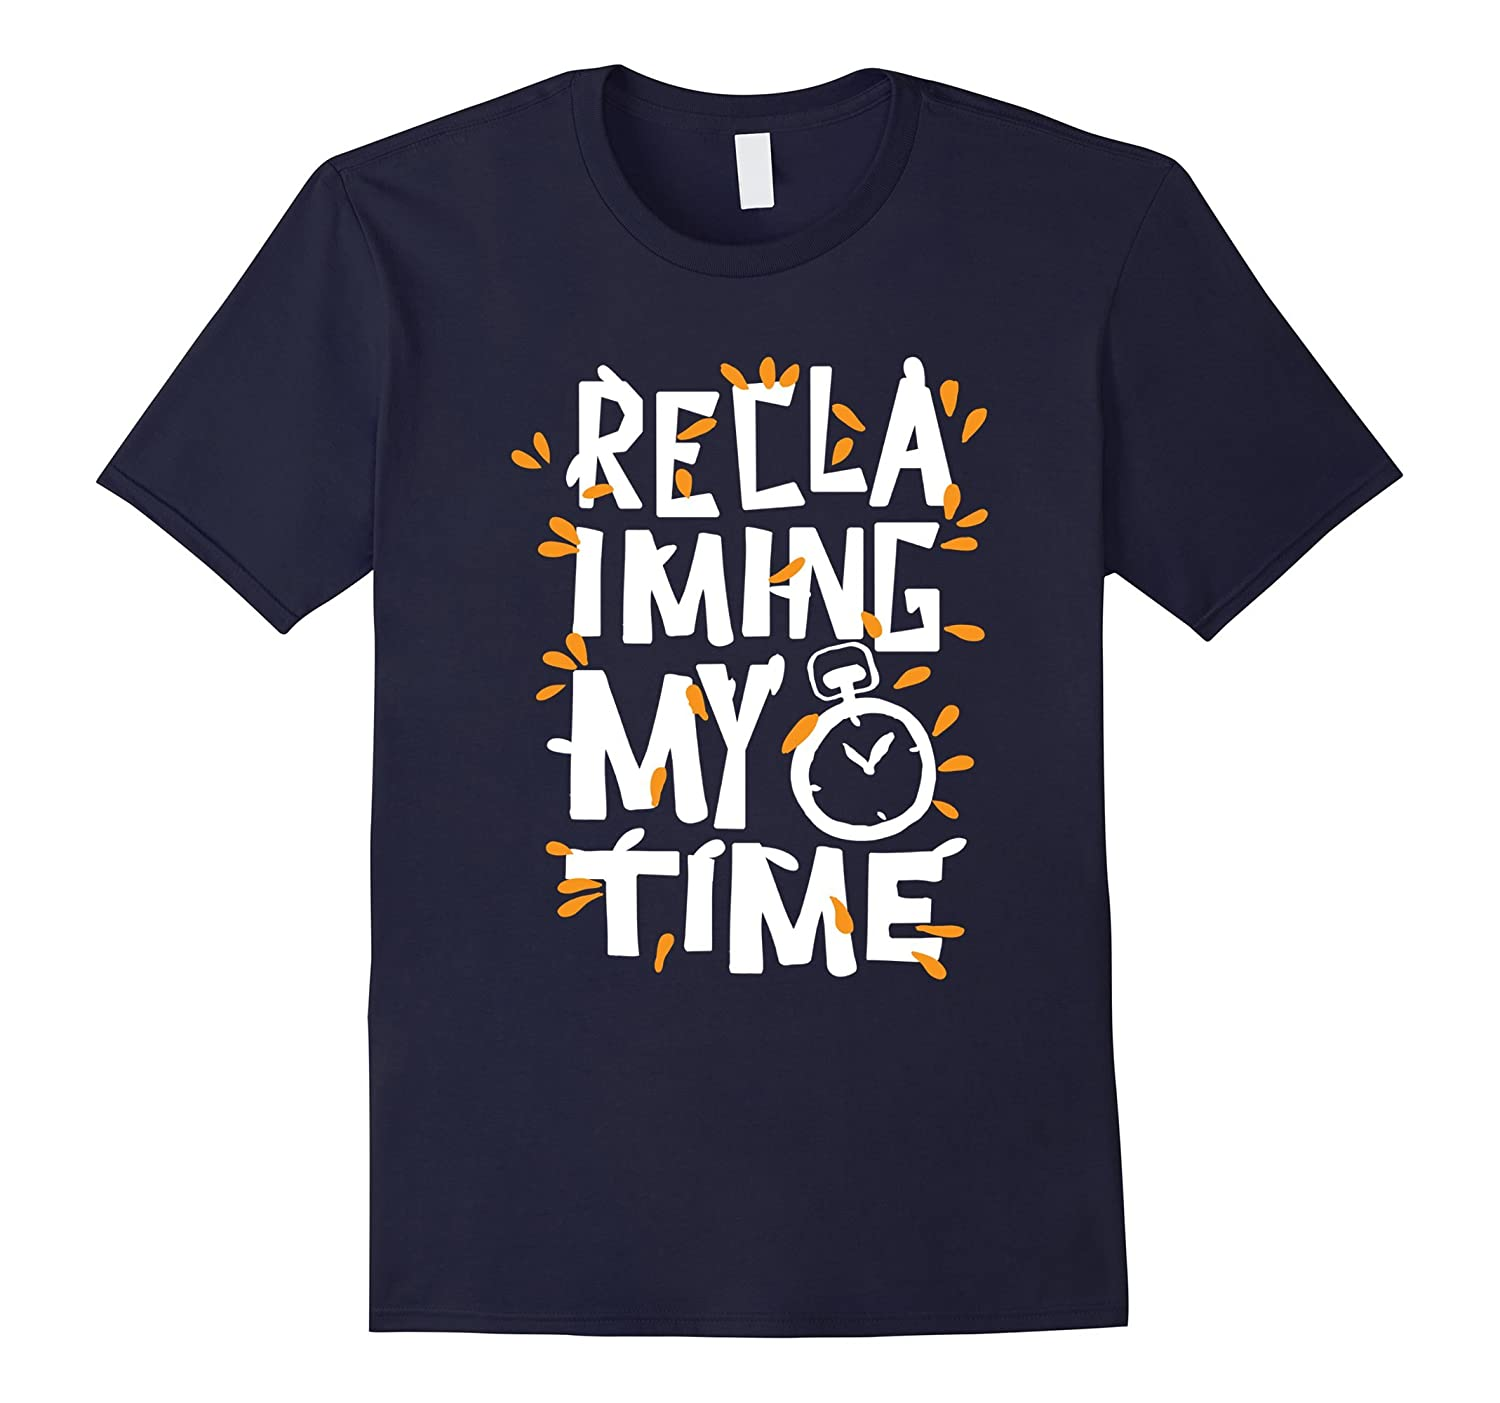 Reclaiming my time t-shirt funny political sayings